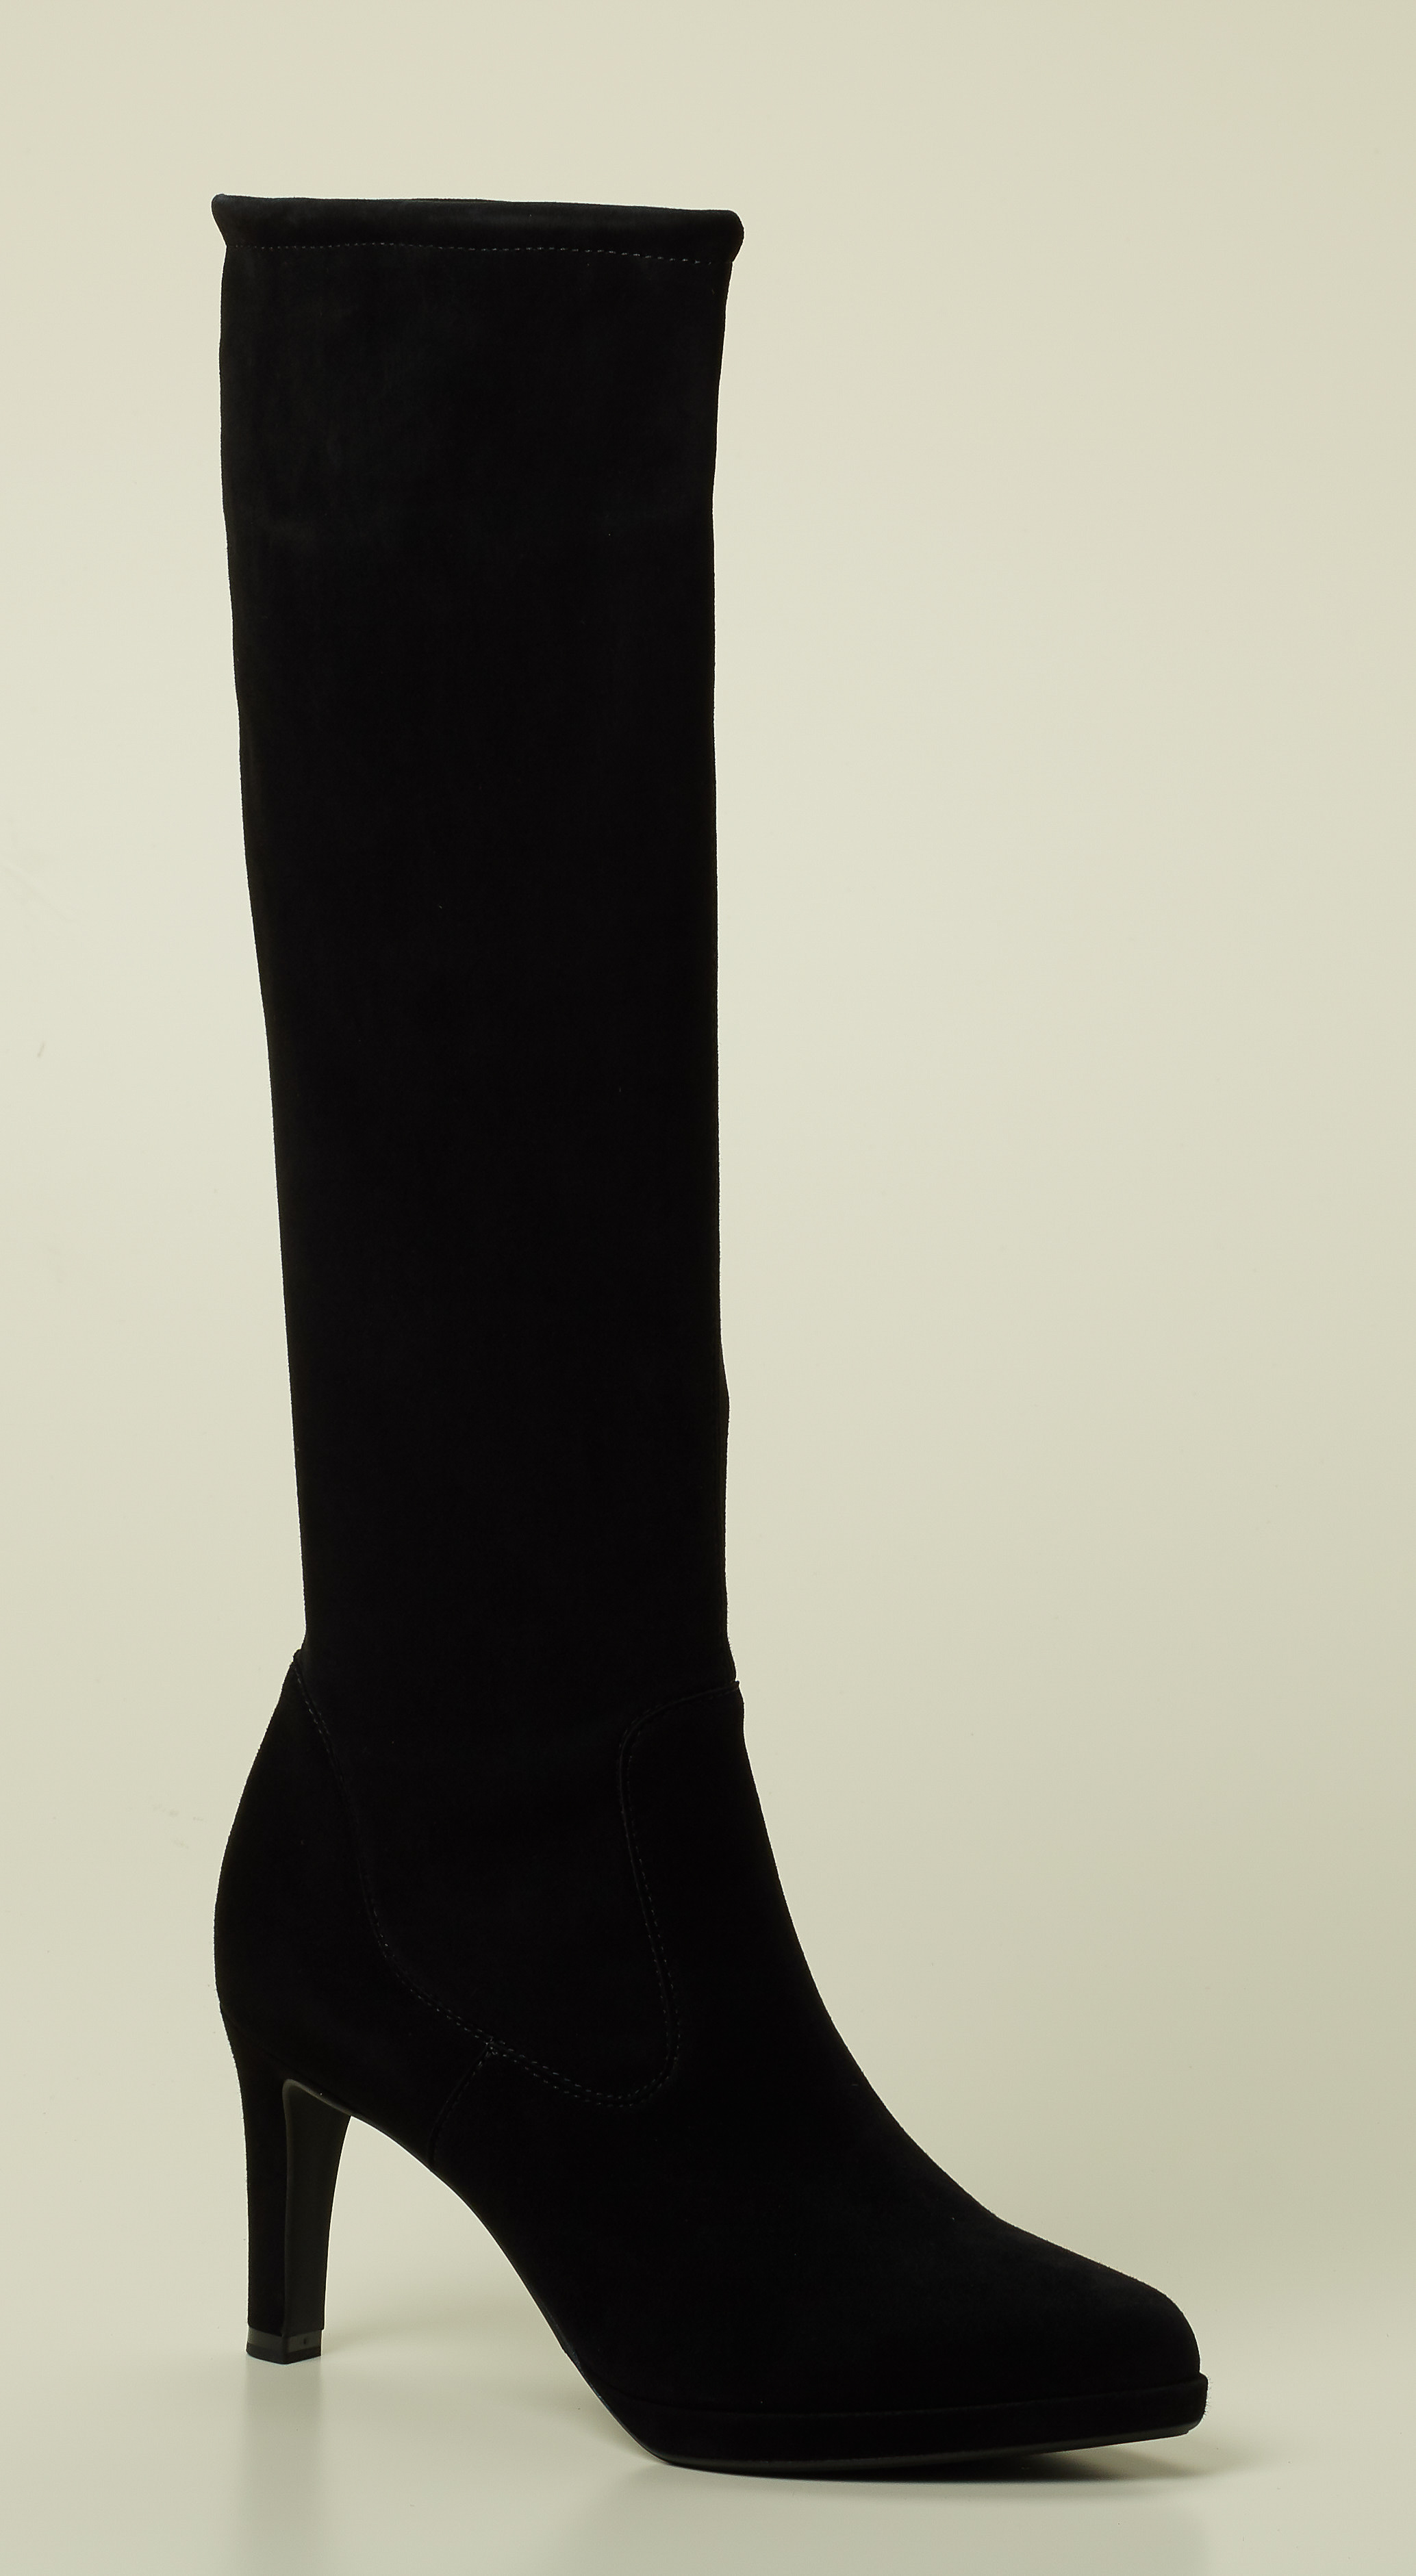 Pumps : Shabbies Amsterdam Schlupfstiefel Schwarz (Black) 38